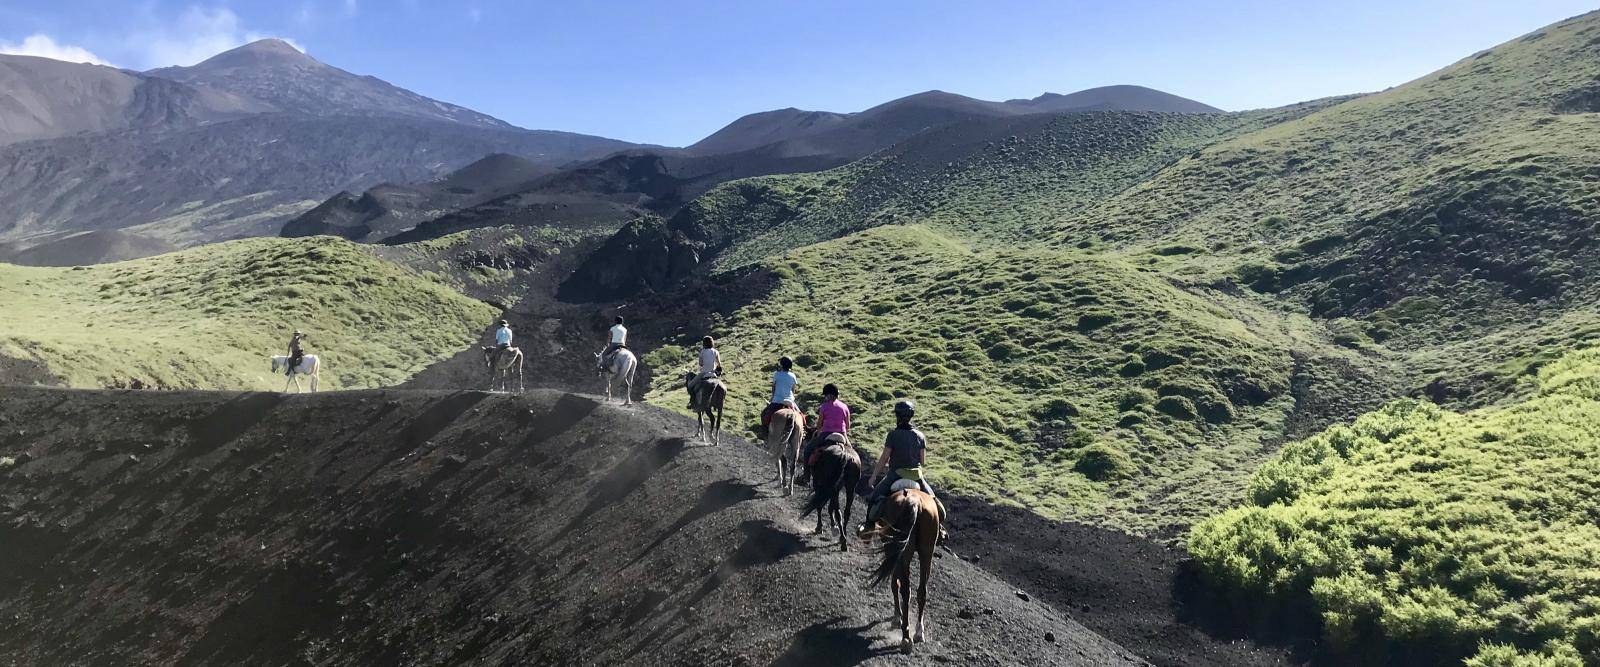 Horse riding Mount Etna